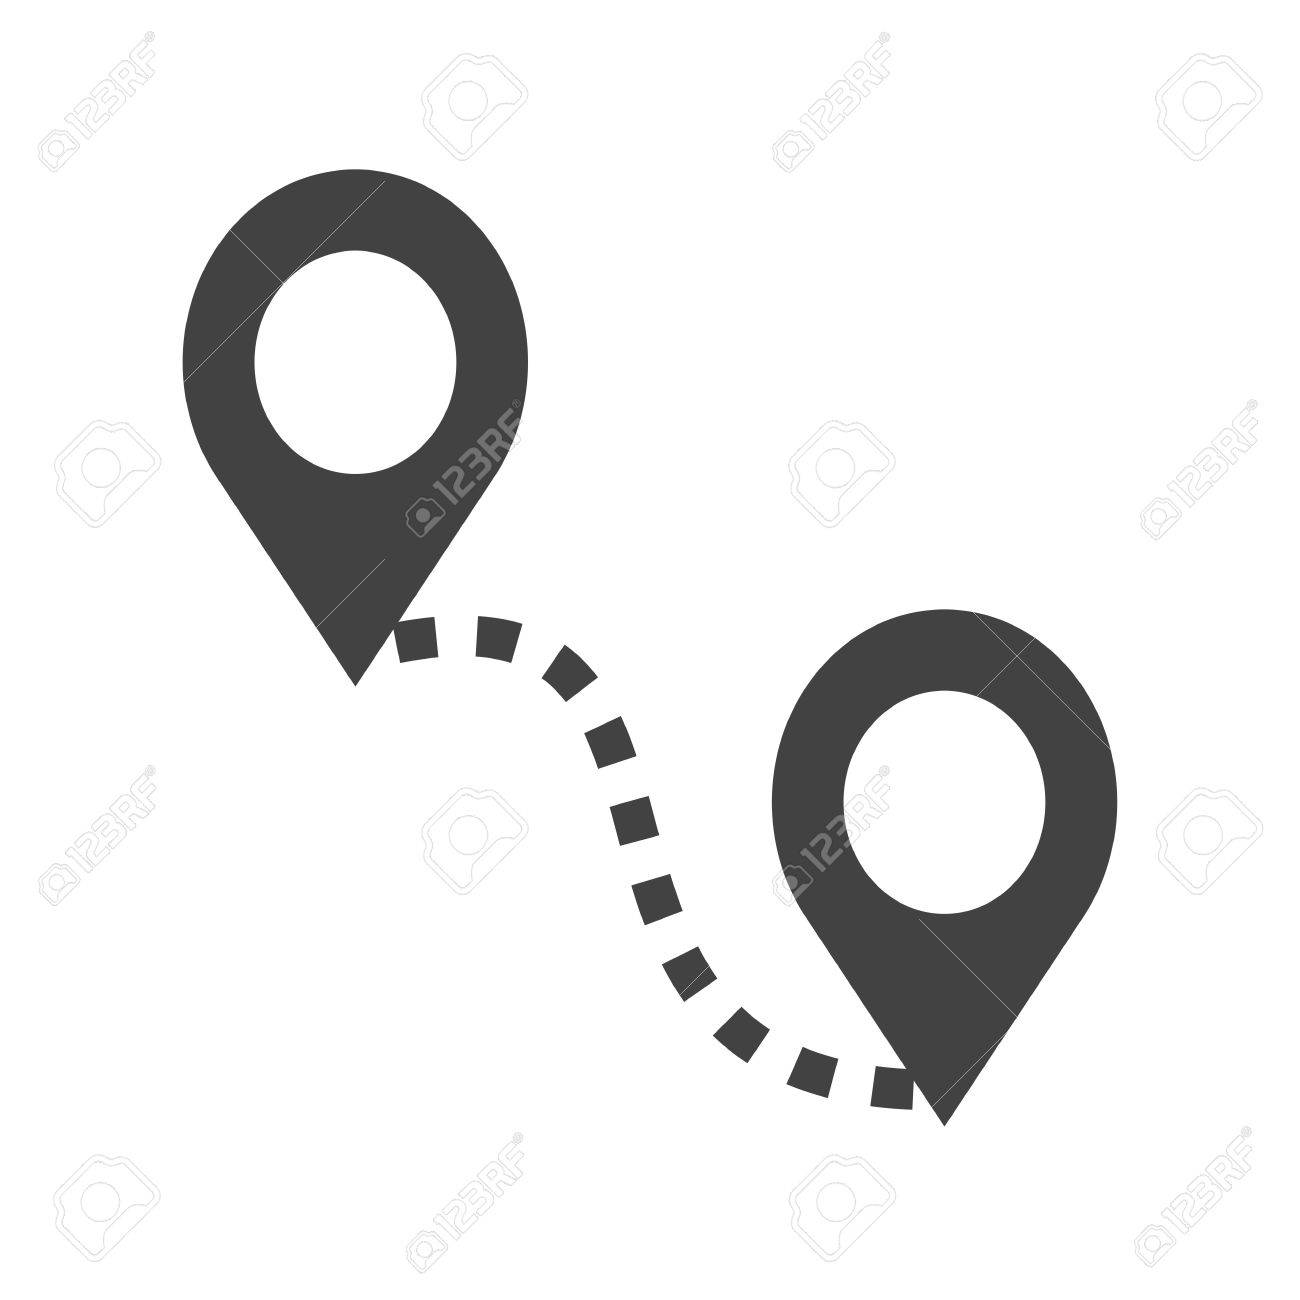 distance road adventure icon vector imagecan also be used for maps